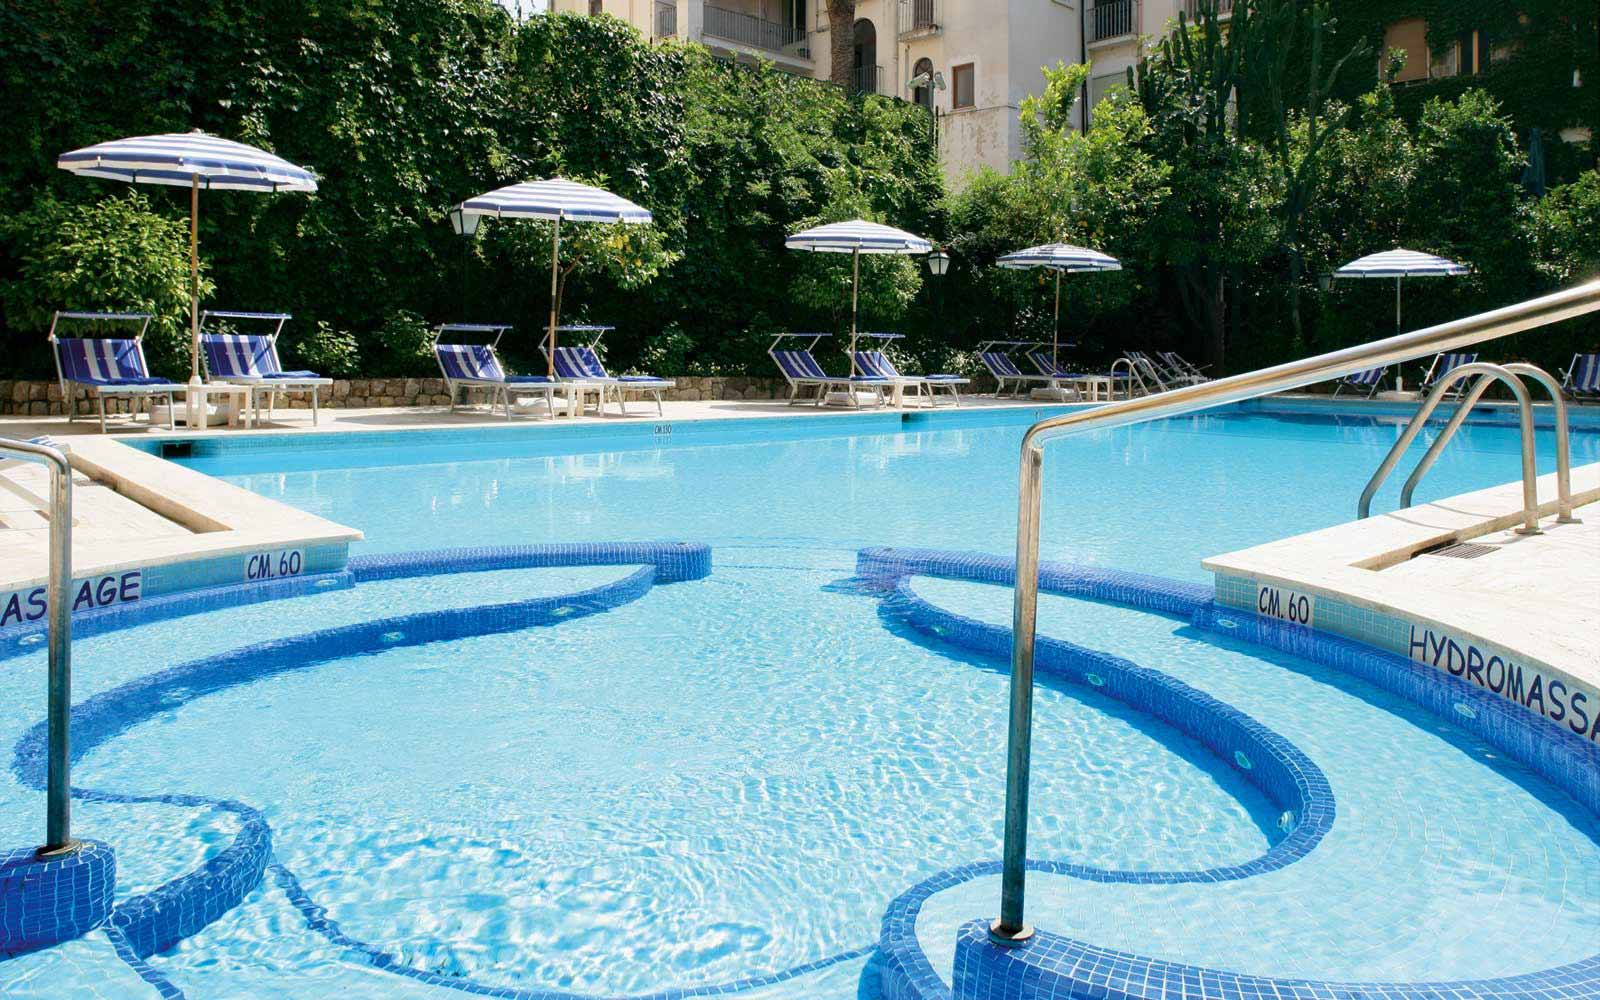 Main pool at Grand Hotel de la Ville